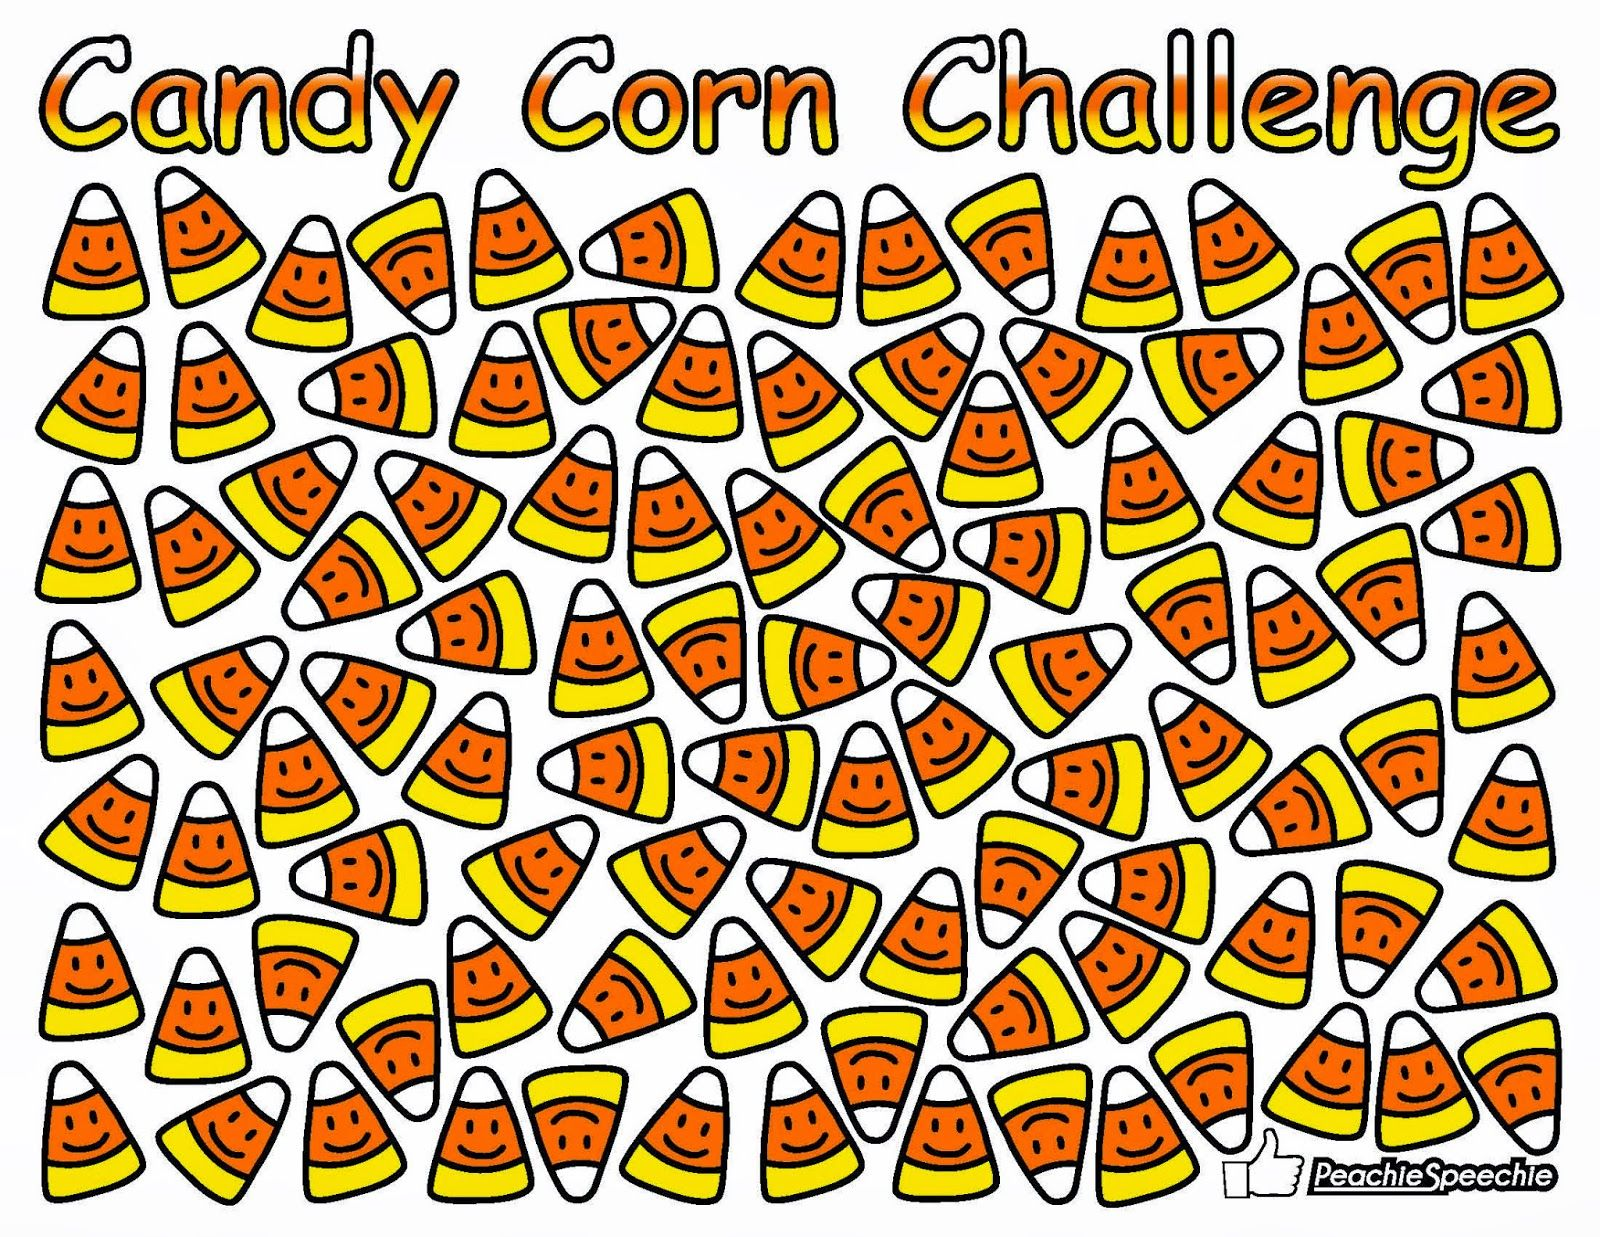 The Peachie Speechie Candy Corn Challenge Already